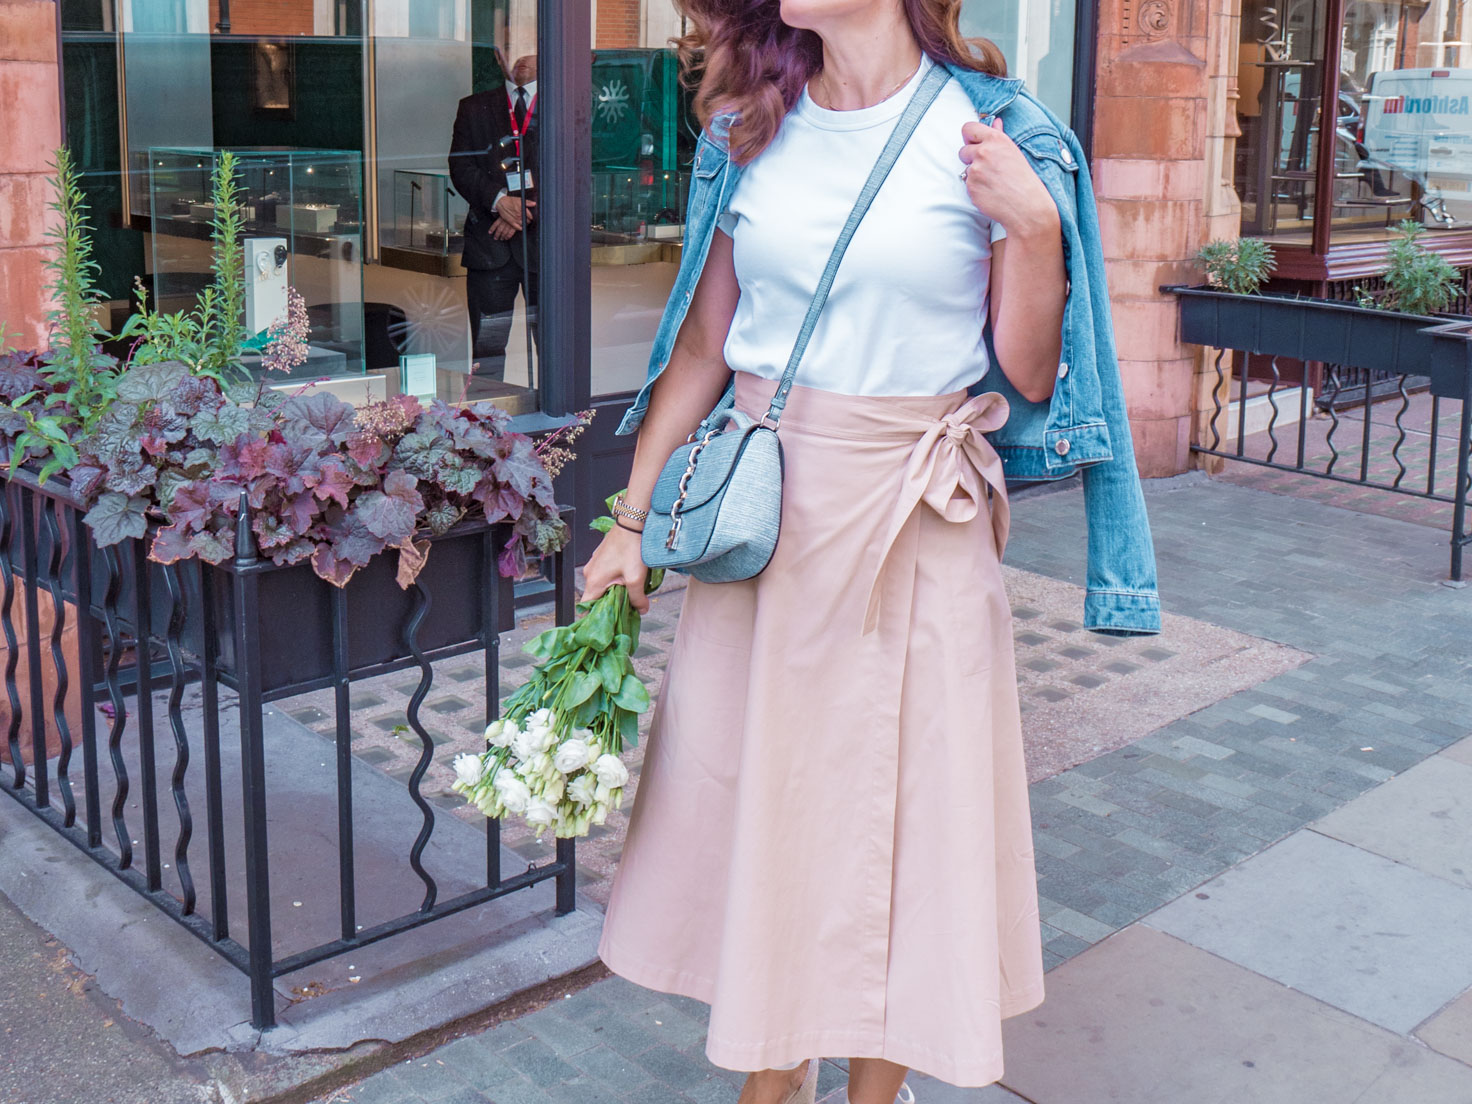 Neutral colours and how to make chic look